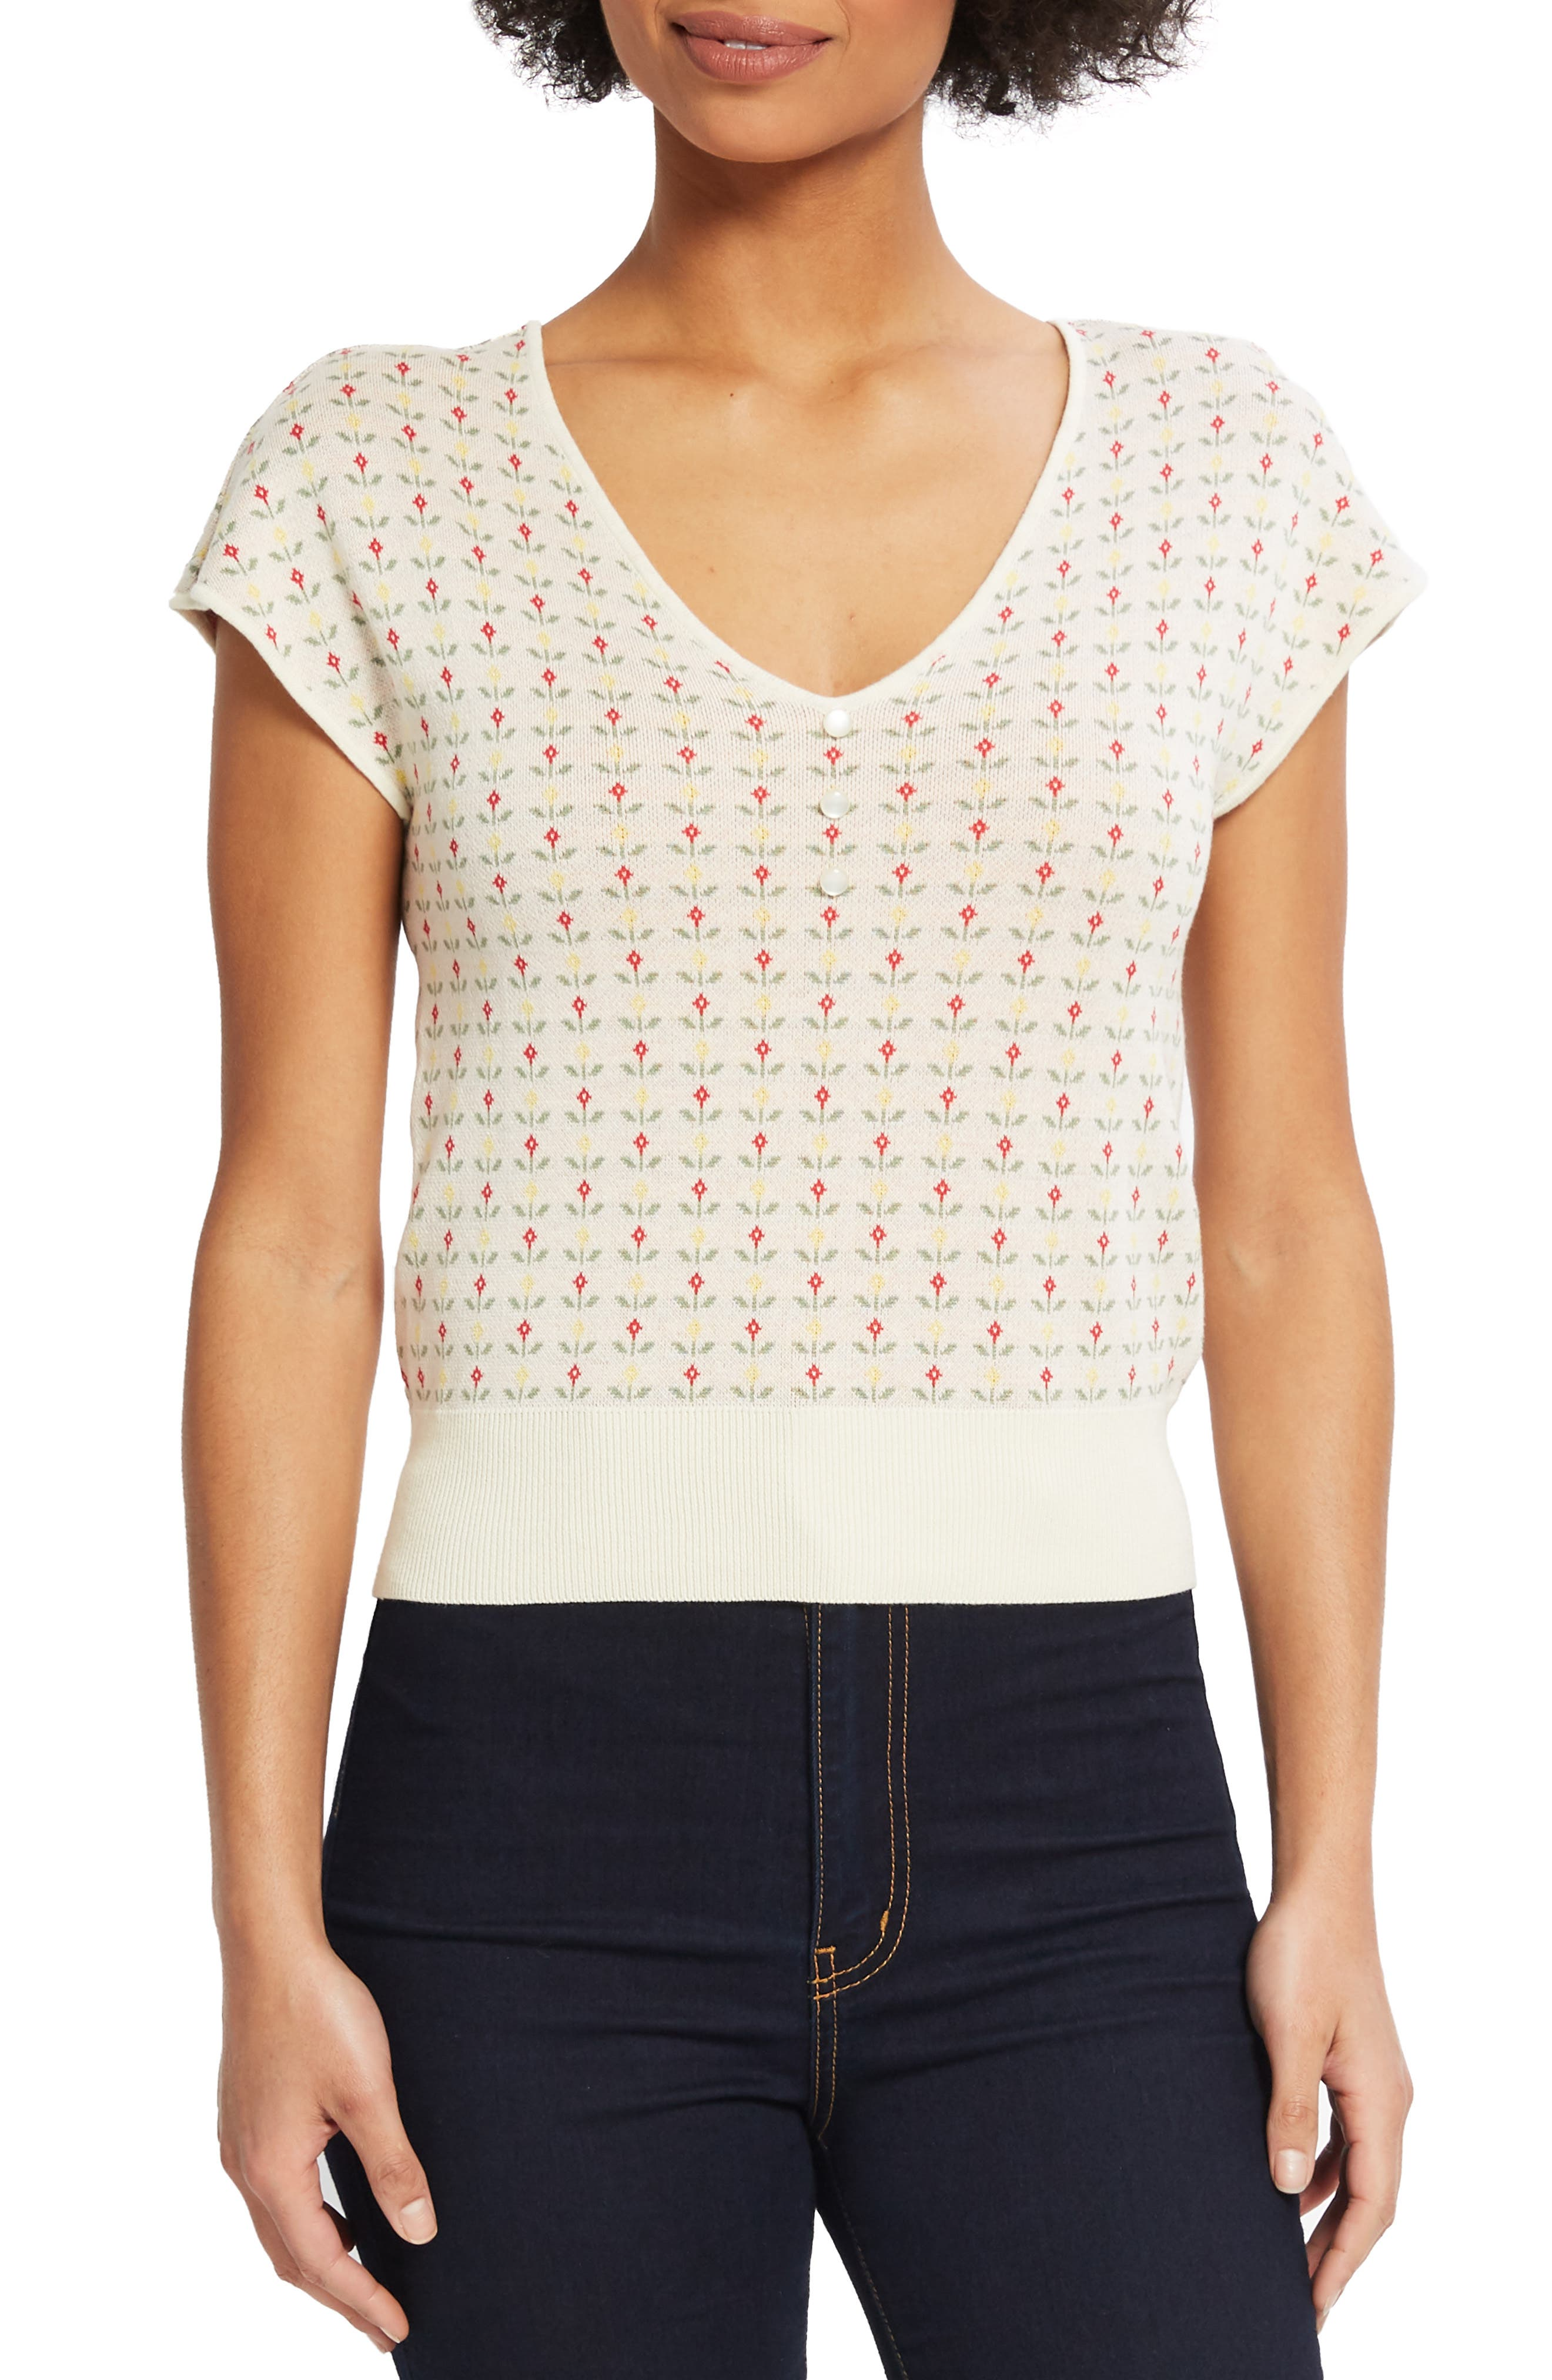 Plus Size Modcloth Floral Short Sleeve Sweater, Ivory